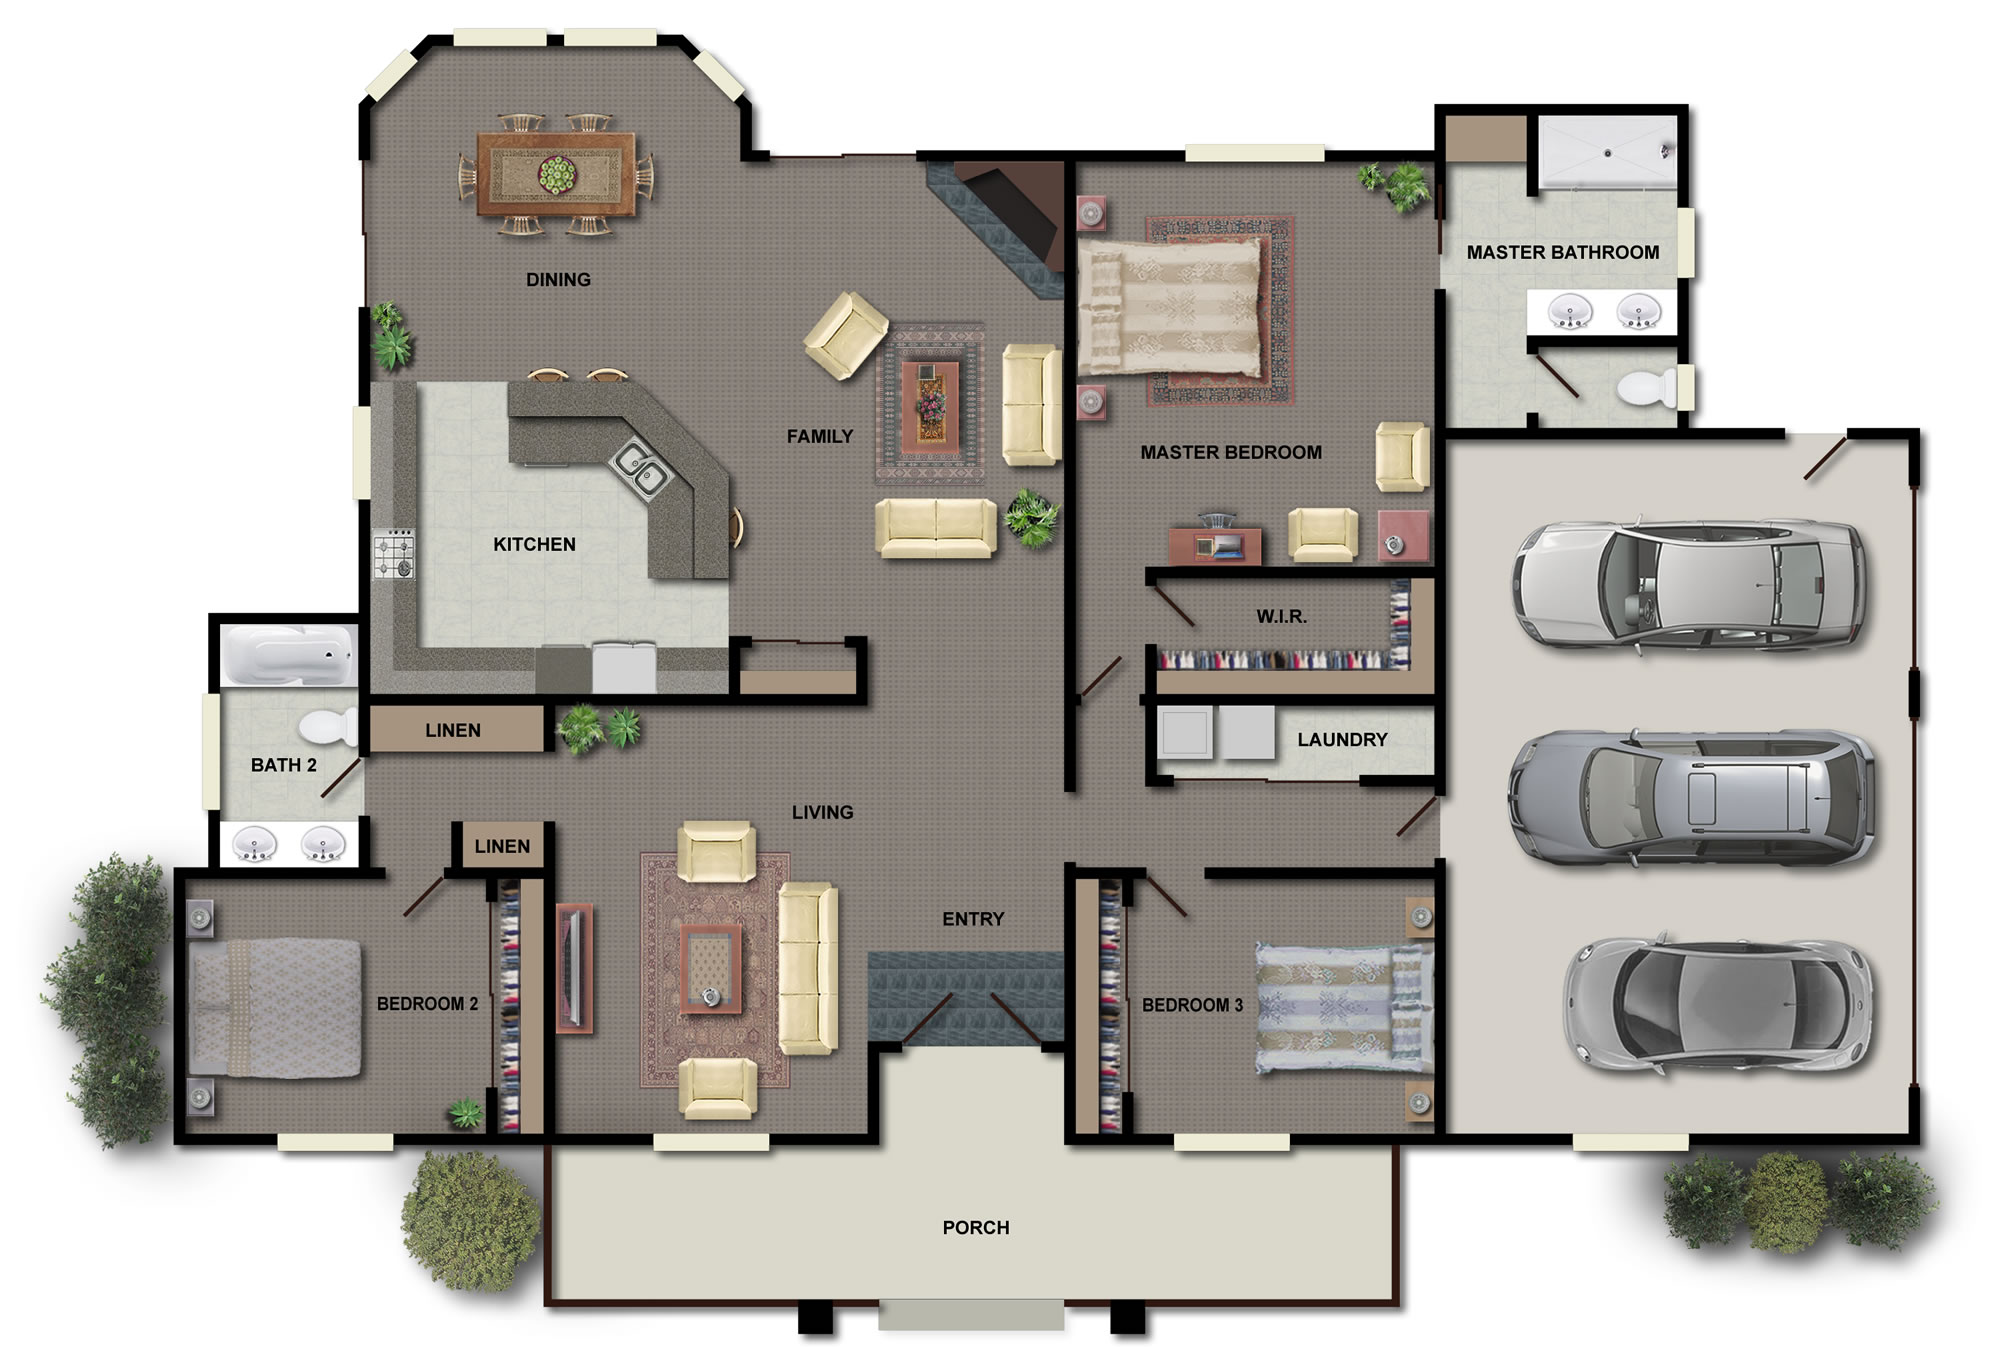 Home Design Floor Plan The 10 Best Ways To Design A Solid Floor Plan Lori Gilder